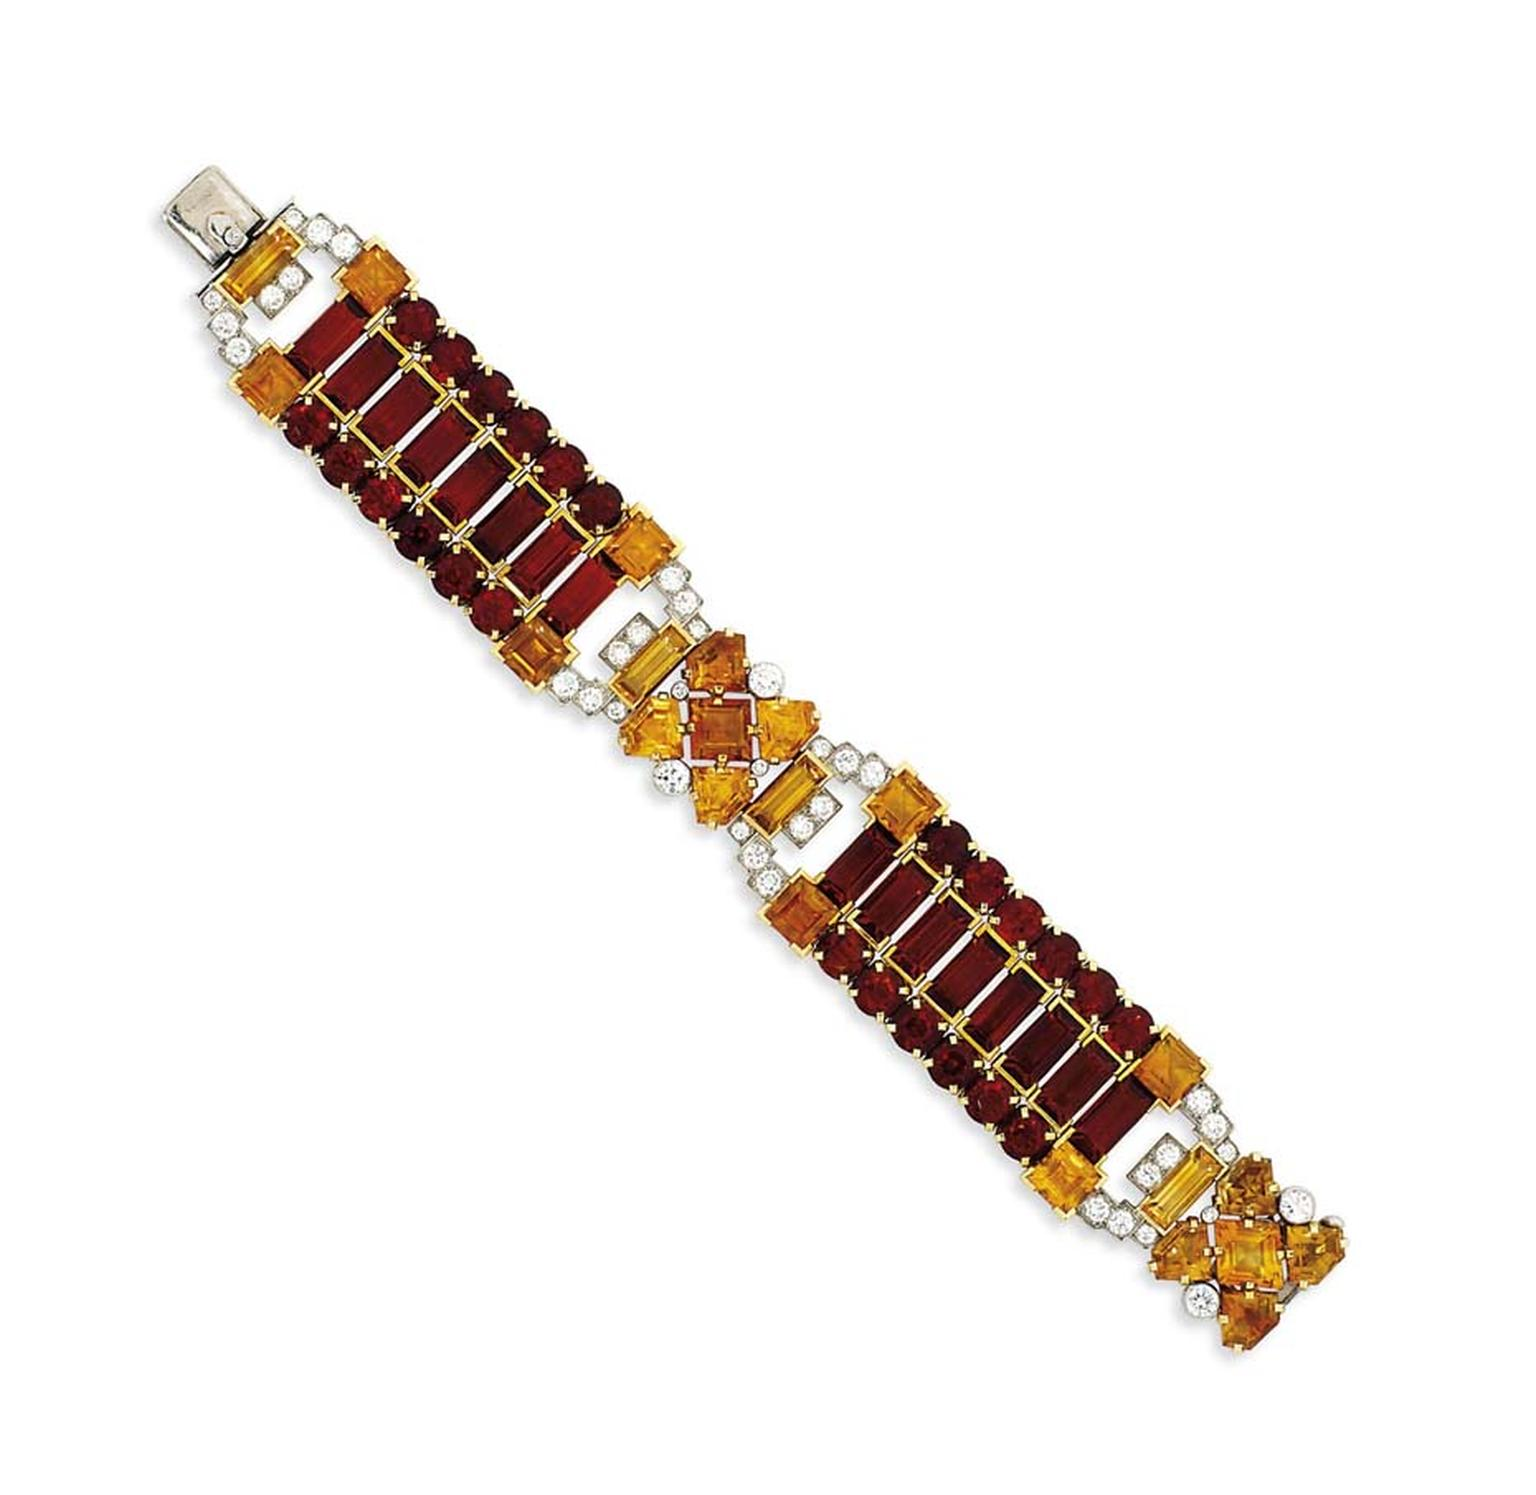 The Art Deco citrine and diamond Cartier London bracelet, circa 1935, that sold for £80,500 at Christie's Important Jewels sale in London on 26 November 2014 (estimate: £25,000-35,000).